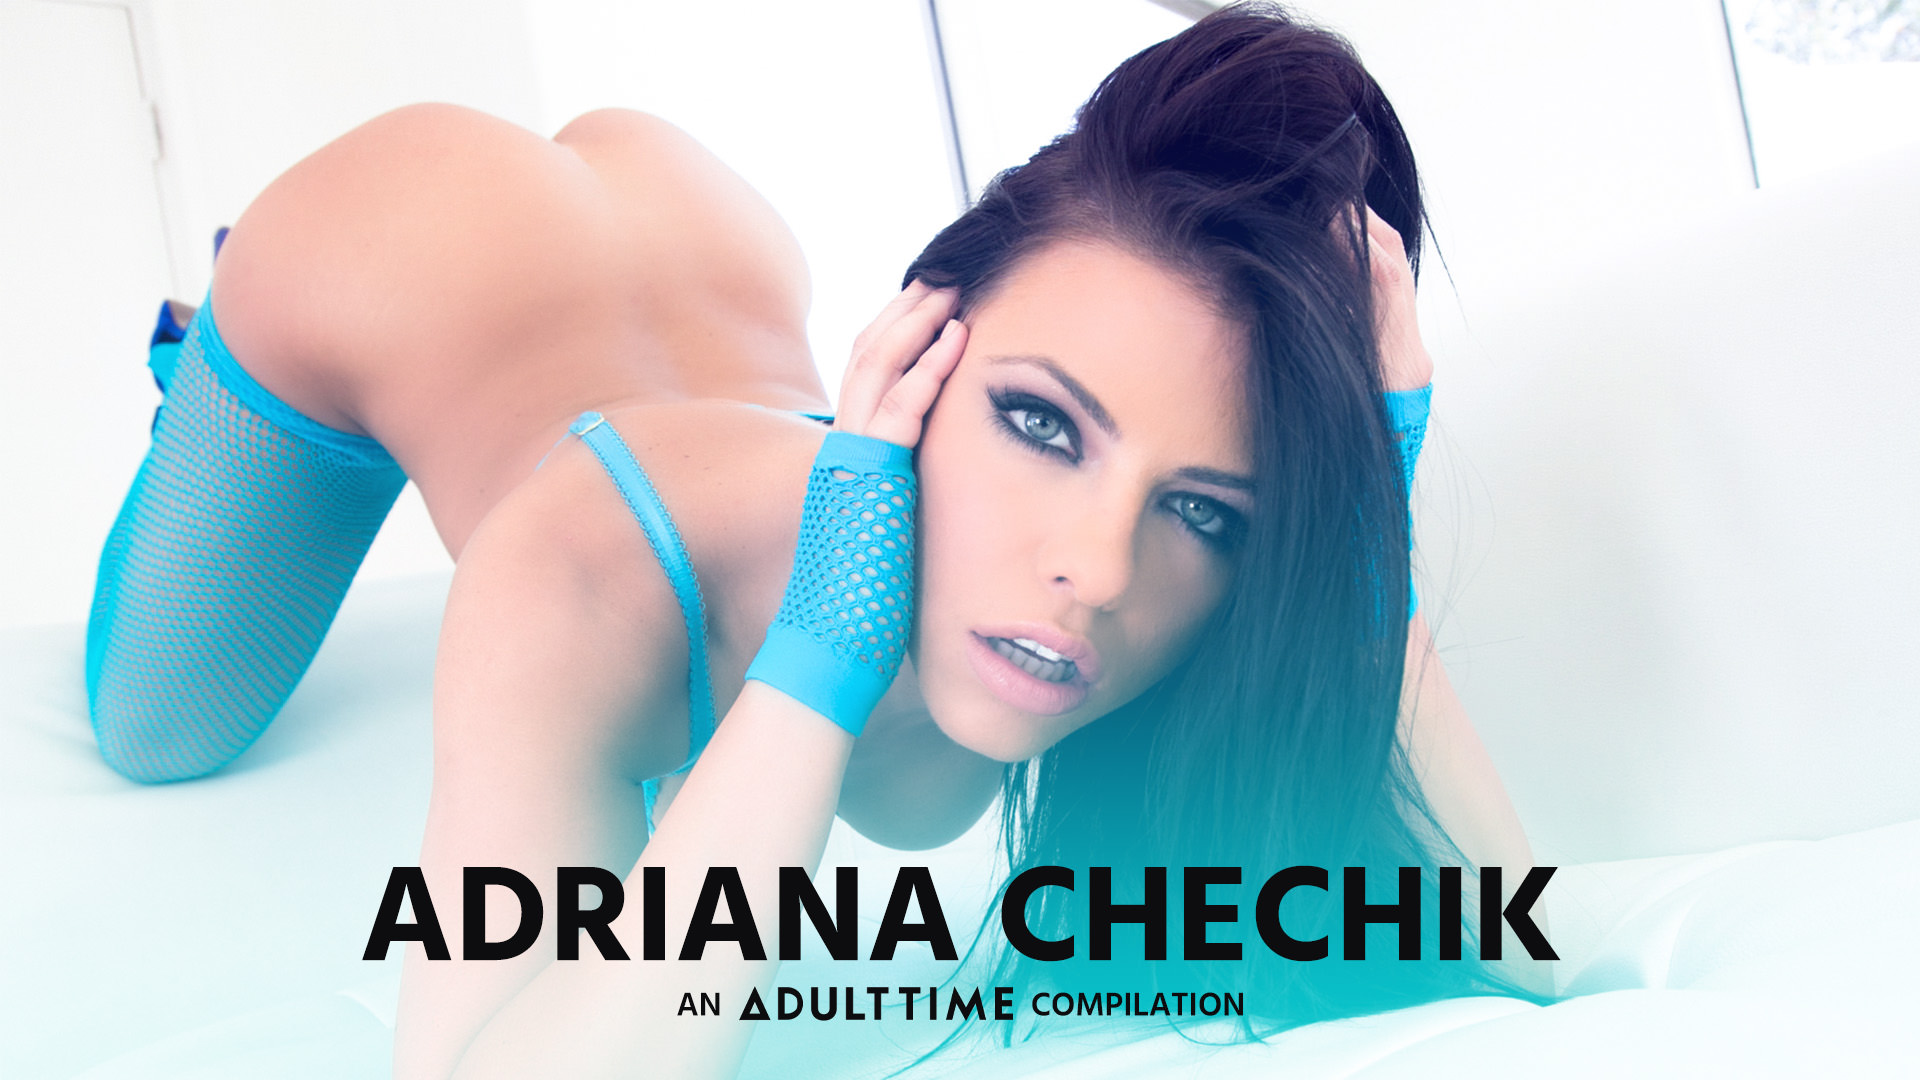 Adriana Chechik - An Adult Time Compilation - Adriana Chechik 1